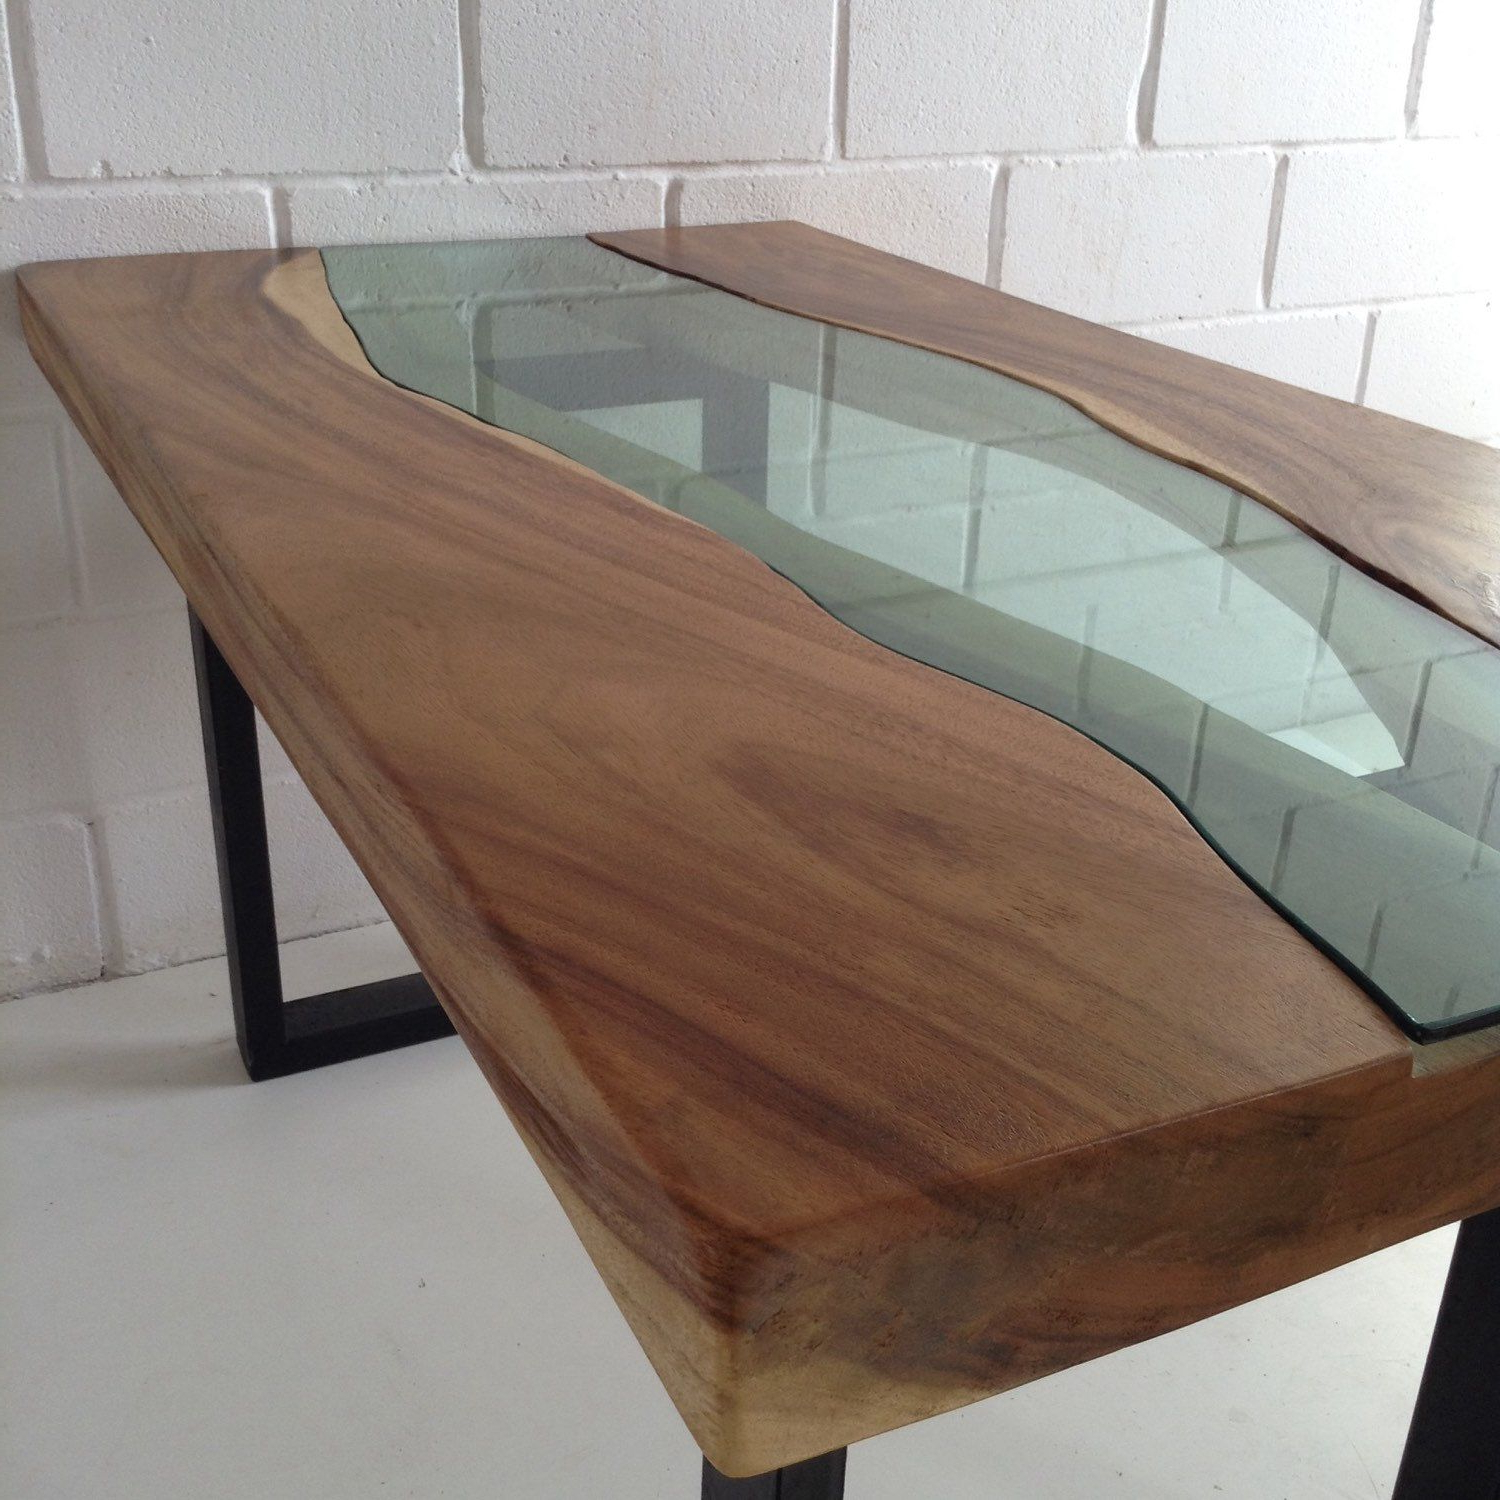 Most Recent Acacia Top Dining Tables With Metal Legs Throughout Live Edge Acacia Wood Dining Table With Glass River Centre (View 4 of 25)